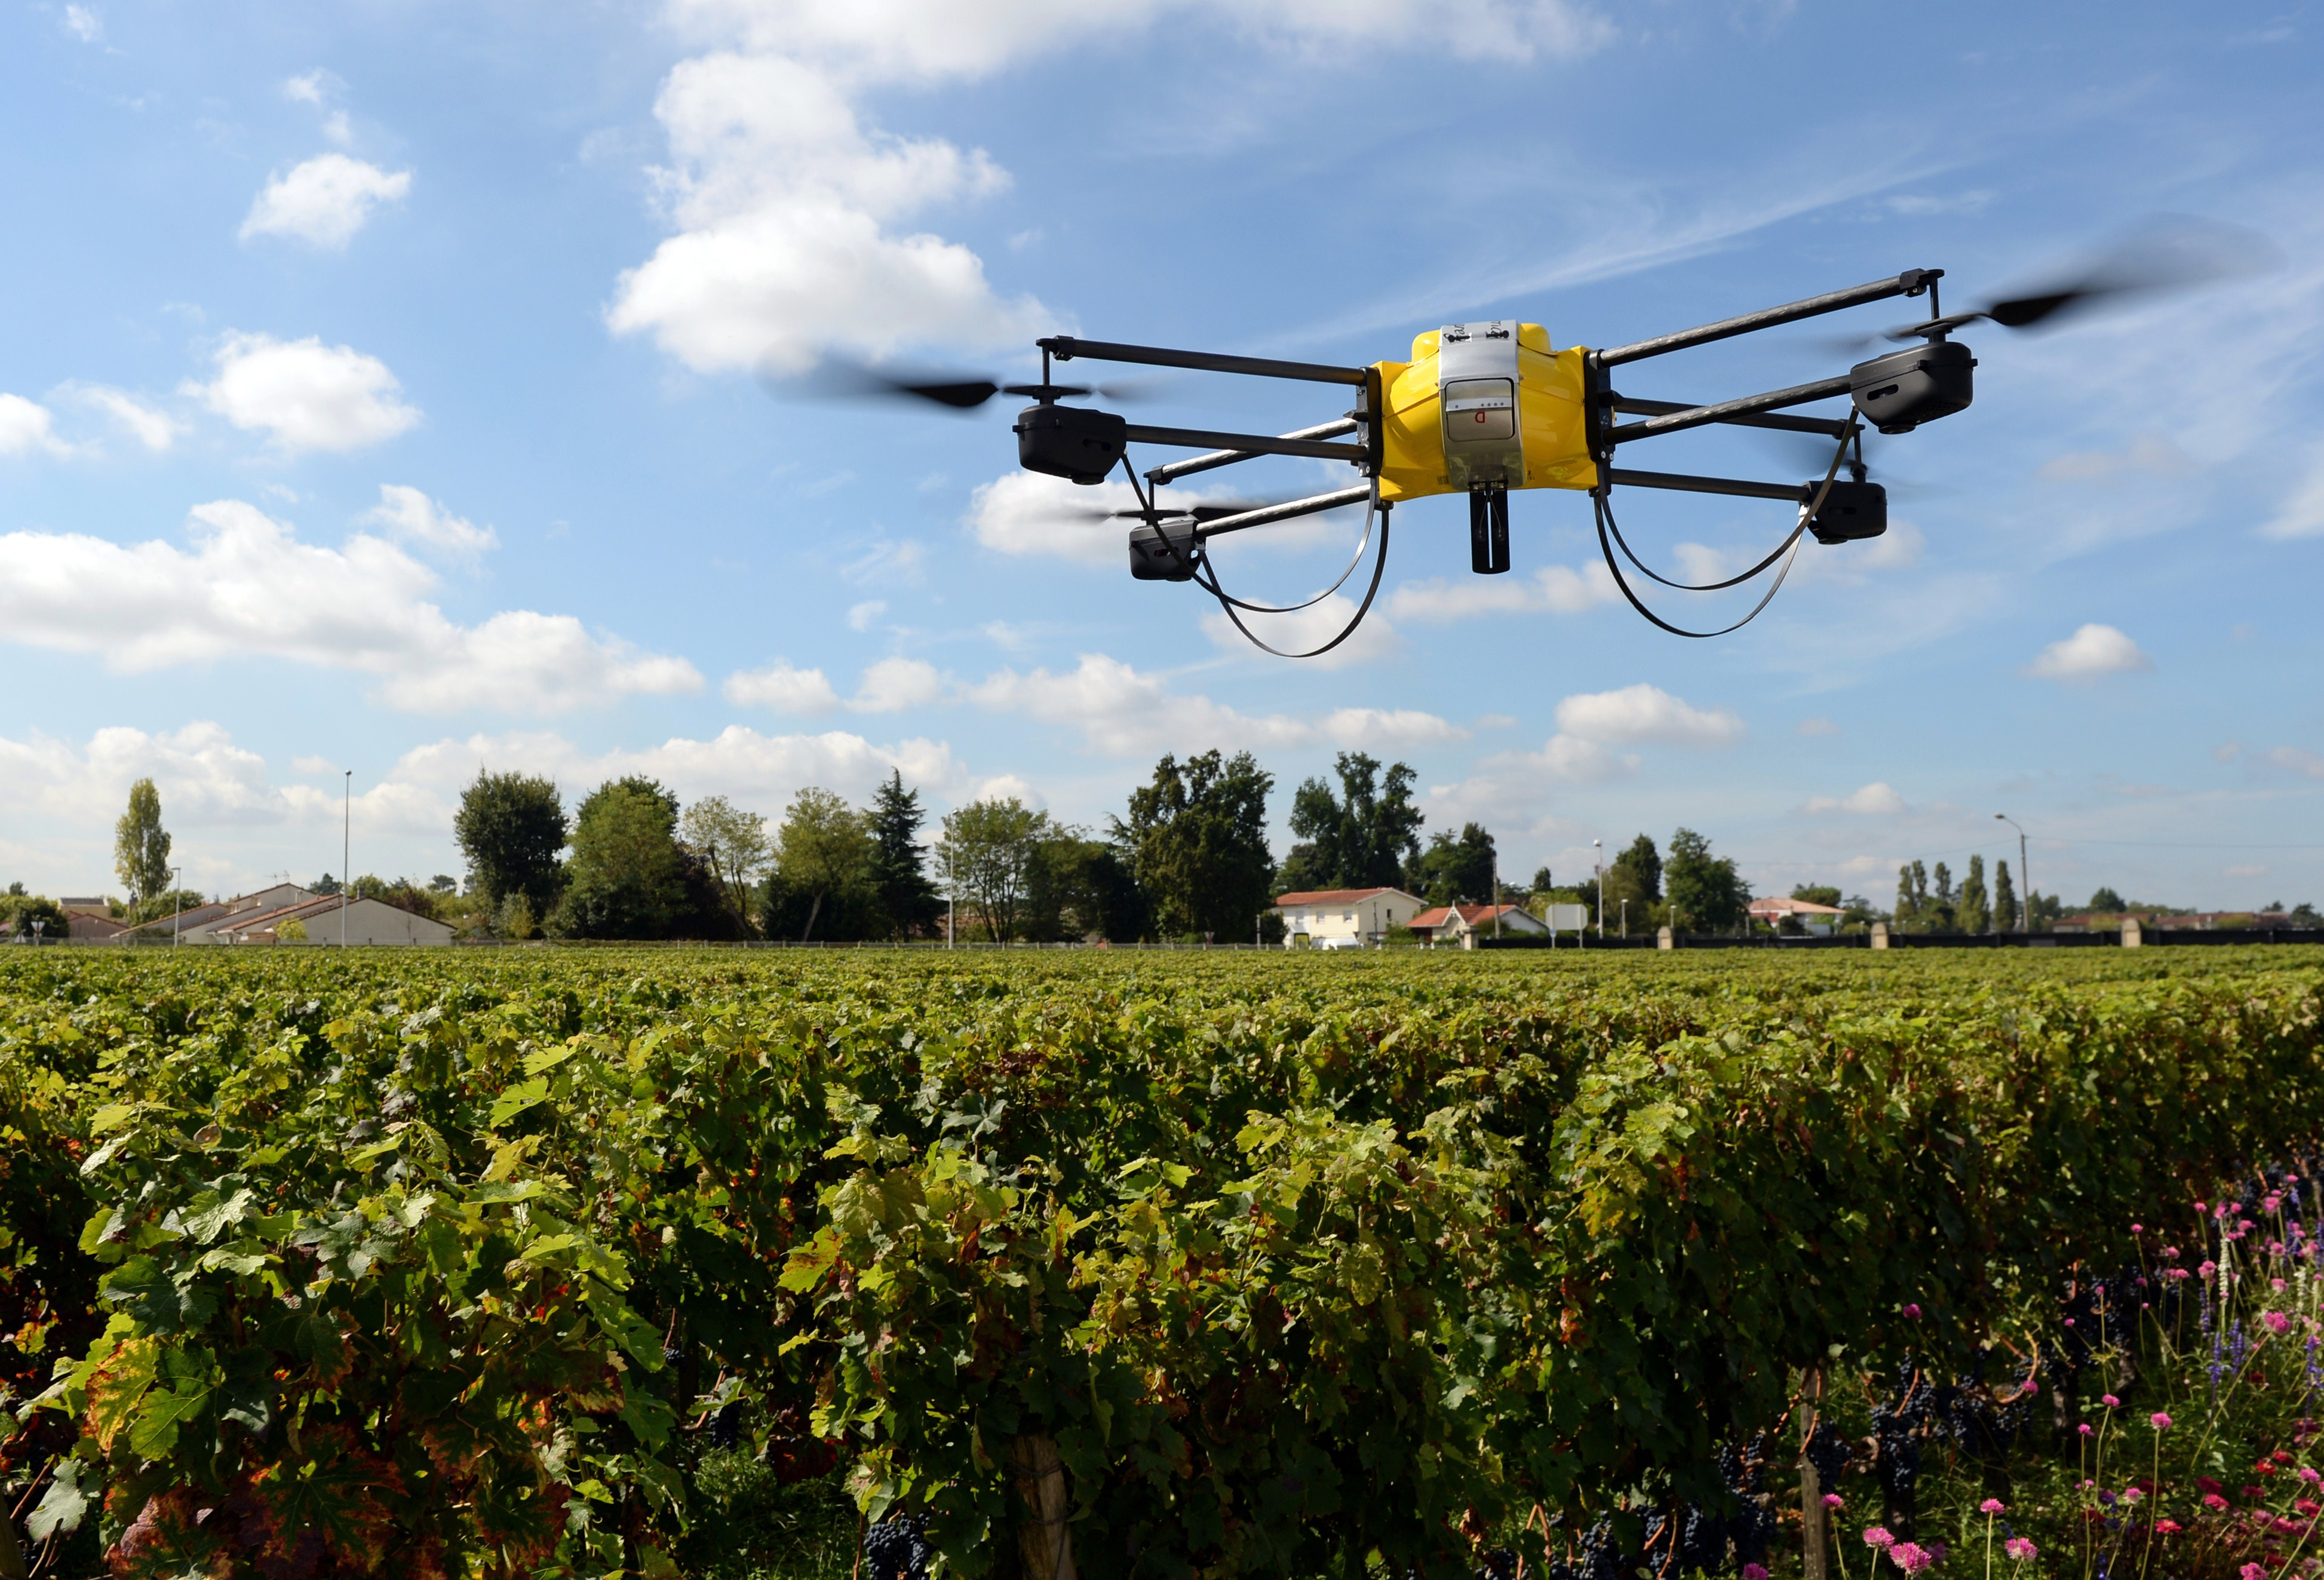 Drones for Agriculture. Picture Courtesy: USN News